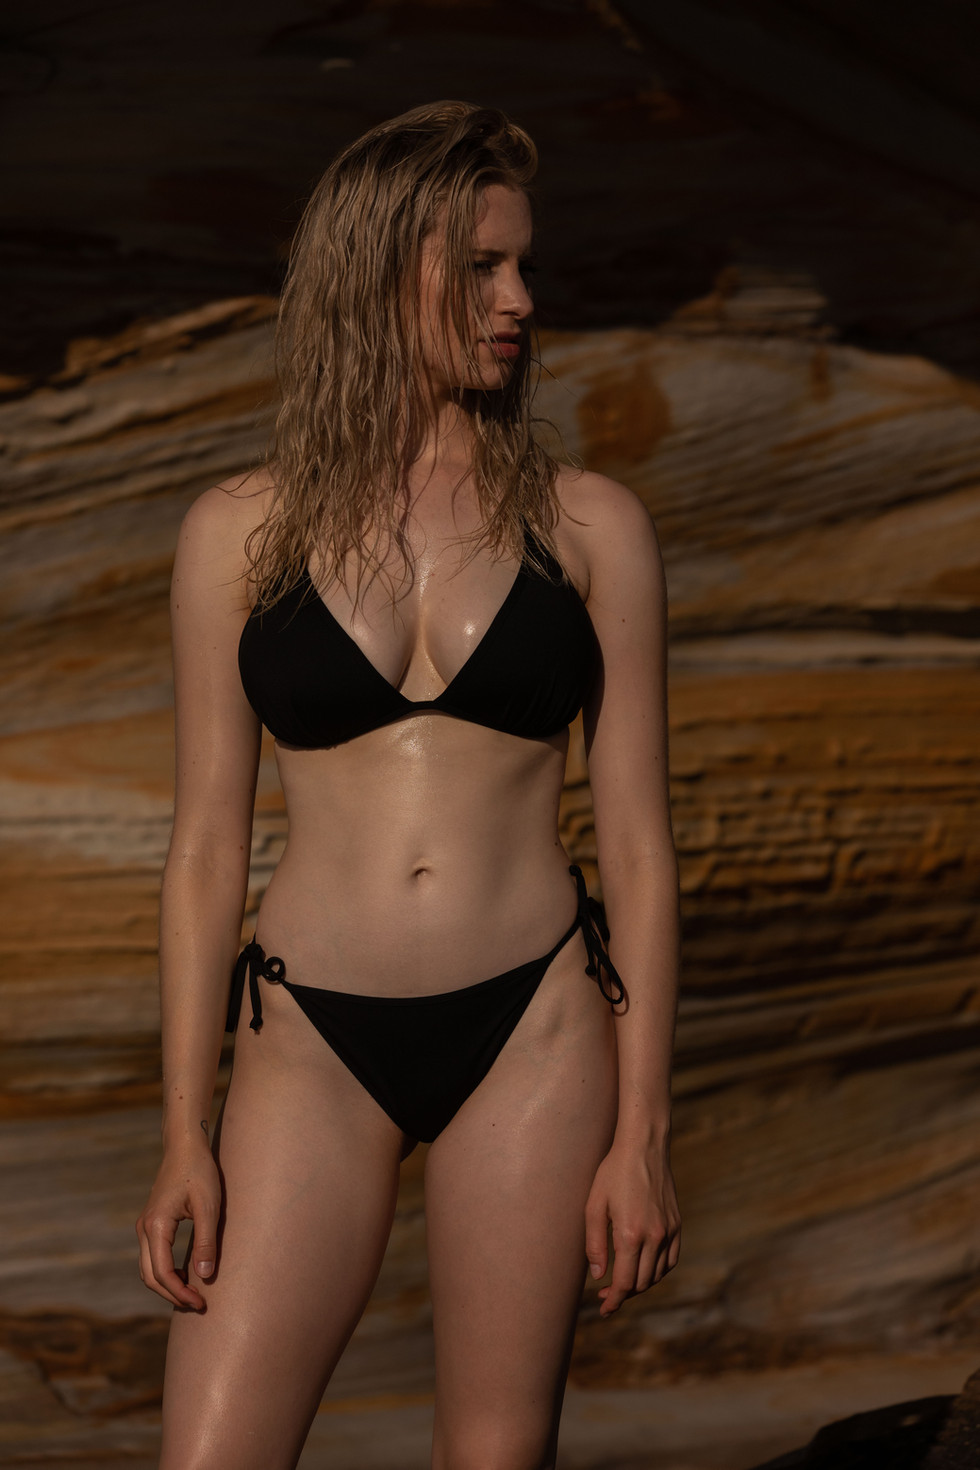 Mel_by_CoogeePhotography-IMGL1416-Edit_7